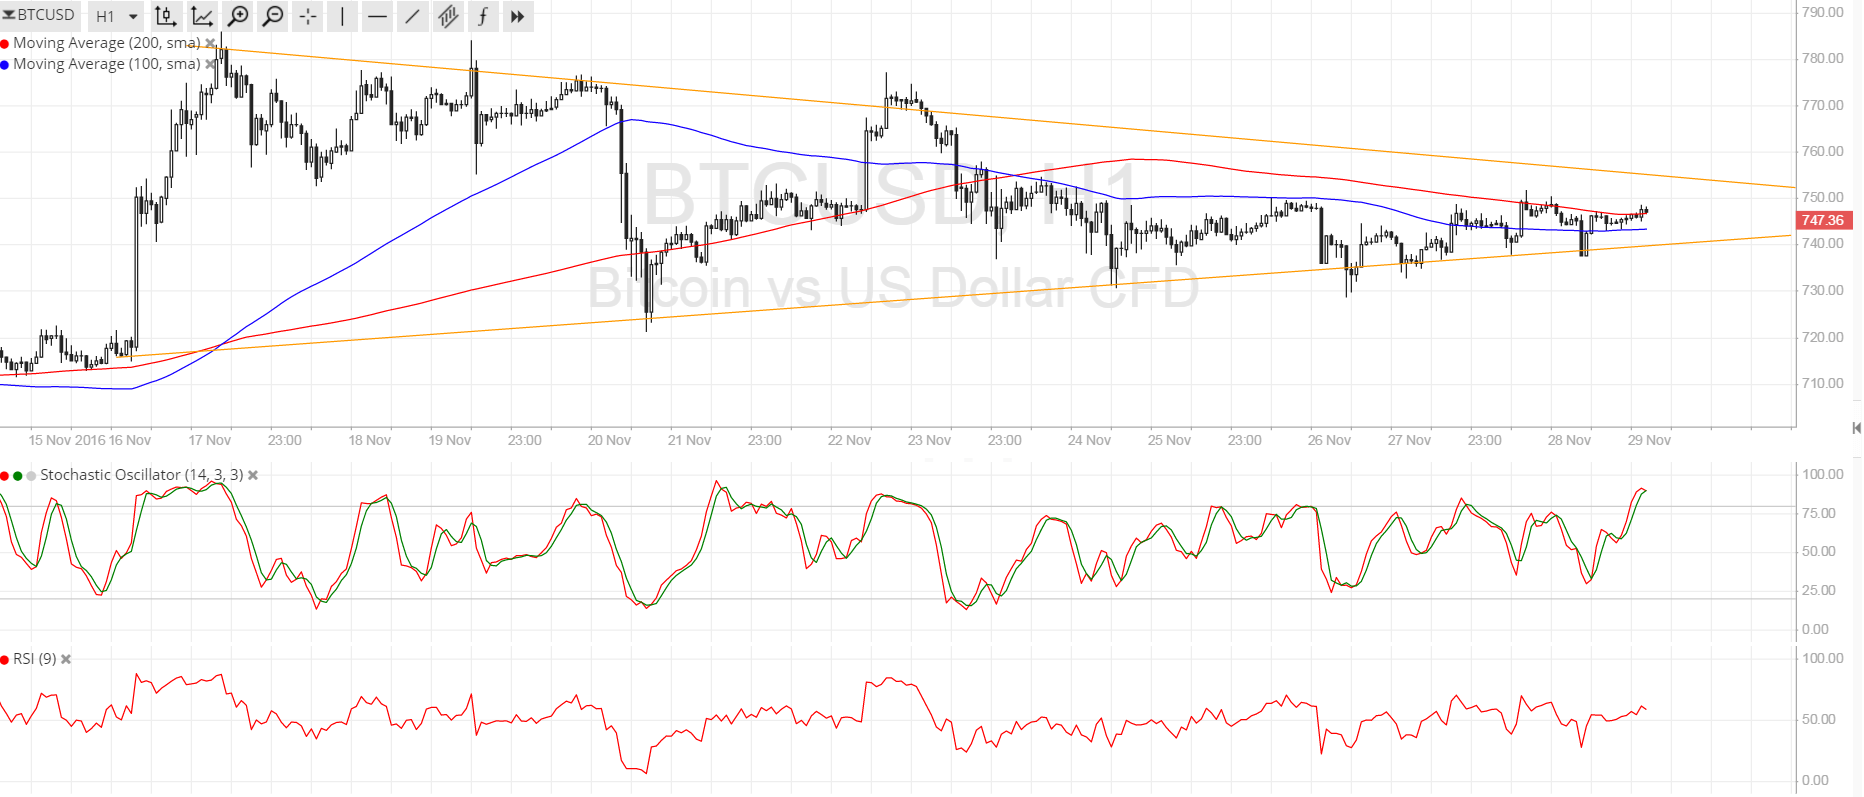 Bitcoin Price Technical Analysis for 11/29/2016 - Sit Tight for a Breakout!